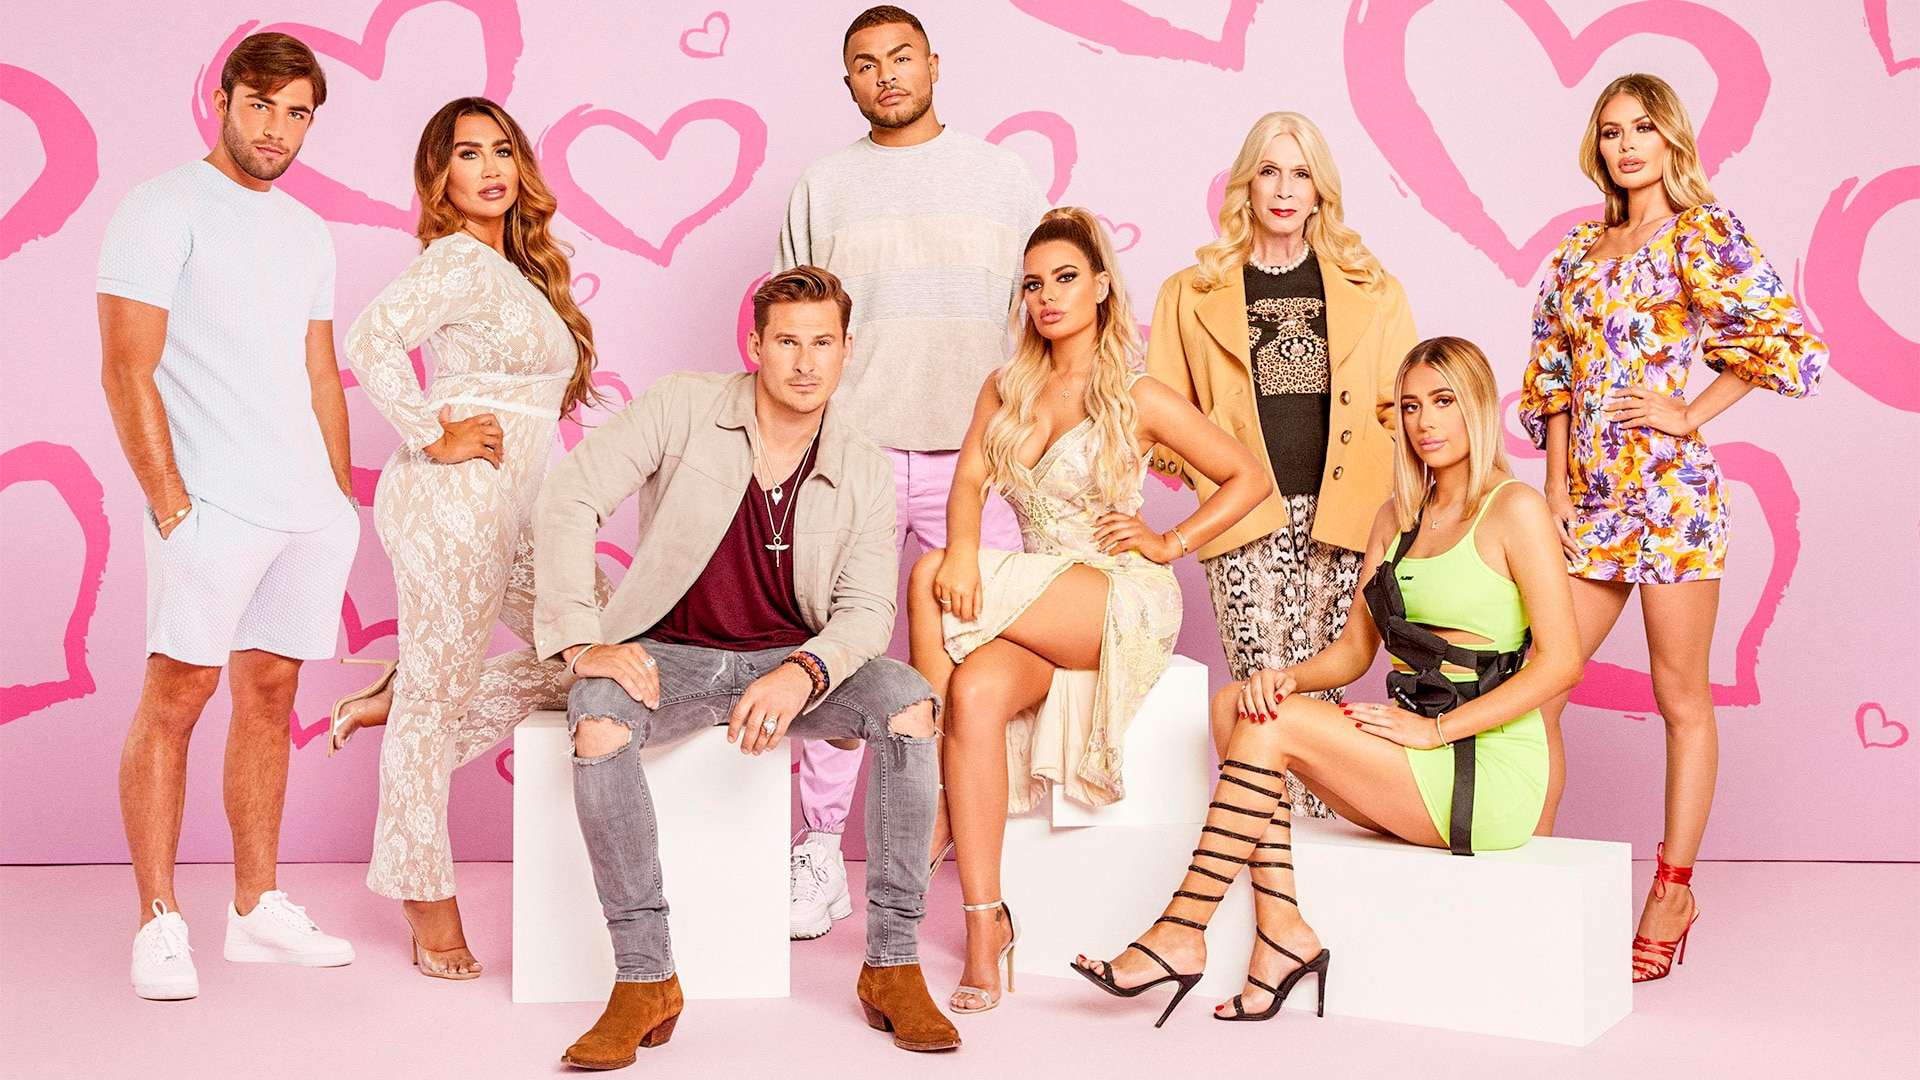 Celebs Go Dating - All 4